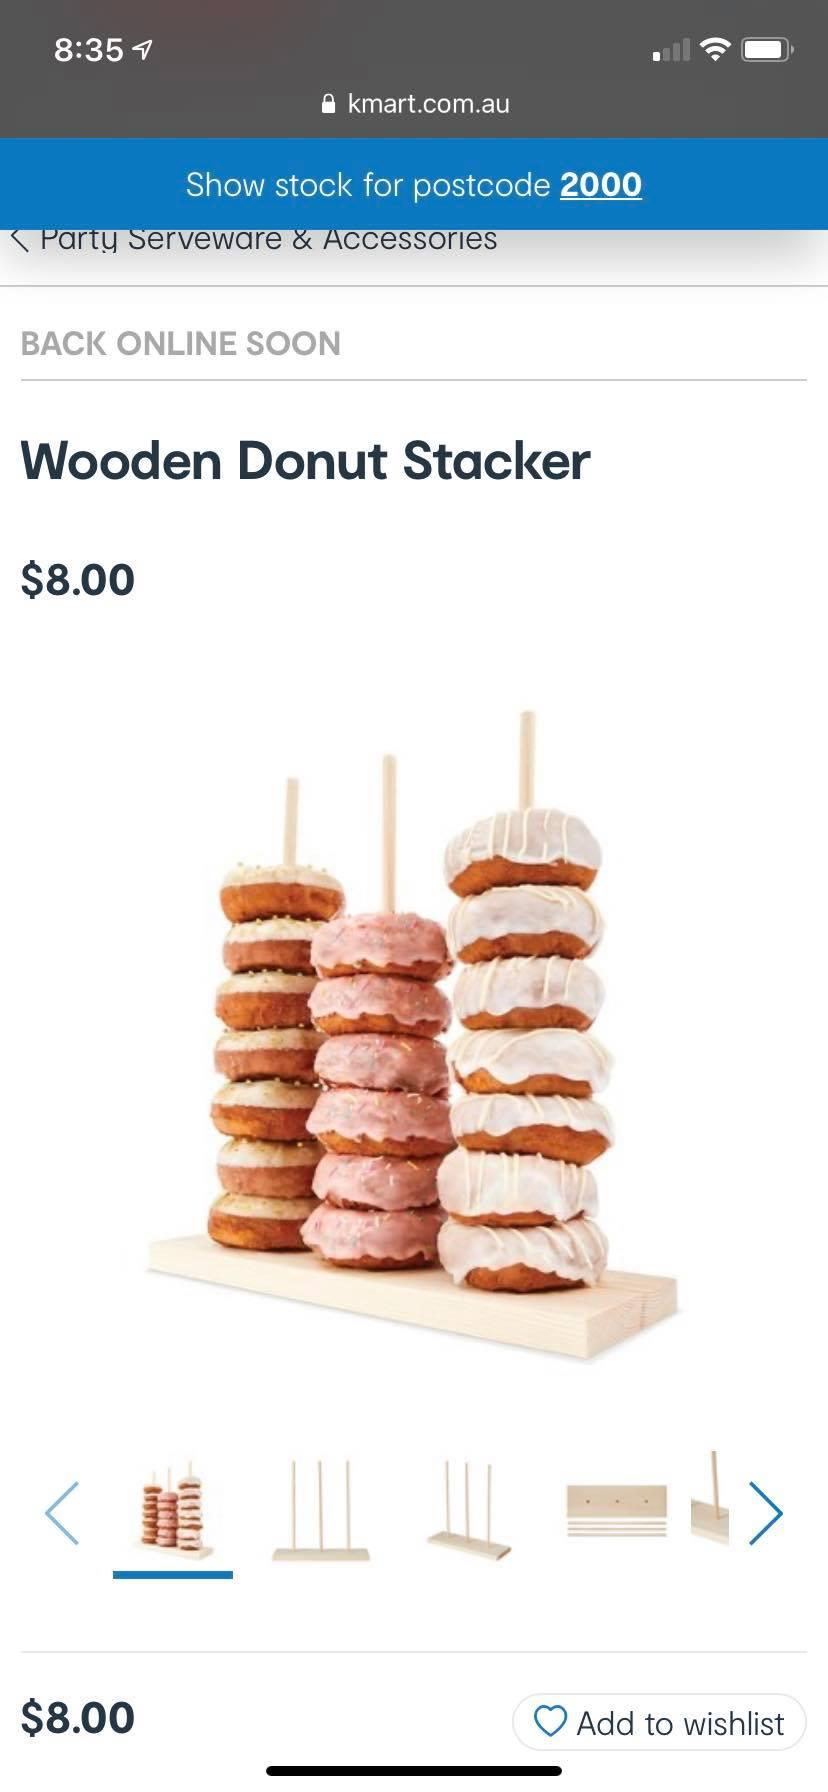 Others have suggested that the donut stacker might be useful for drying reusable zip-loc bags or storing hair scrunchies. Photo: Kmart.